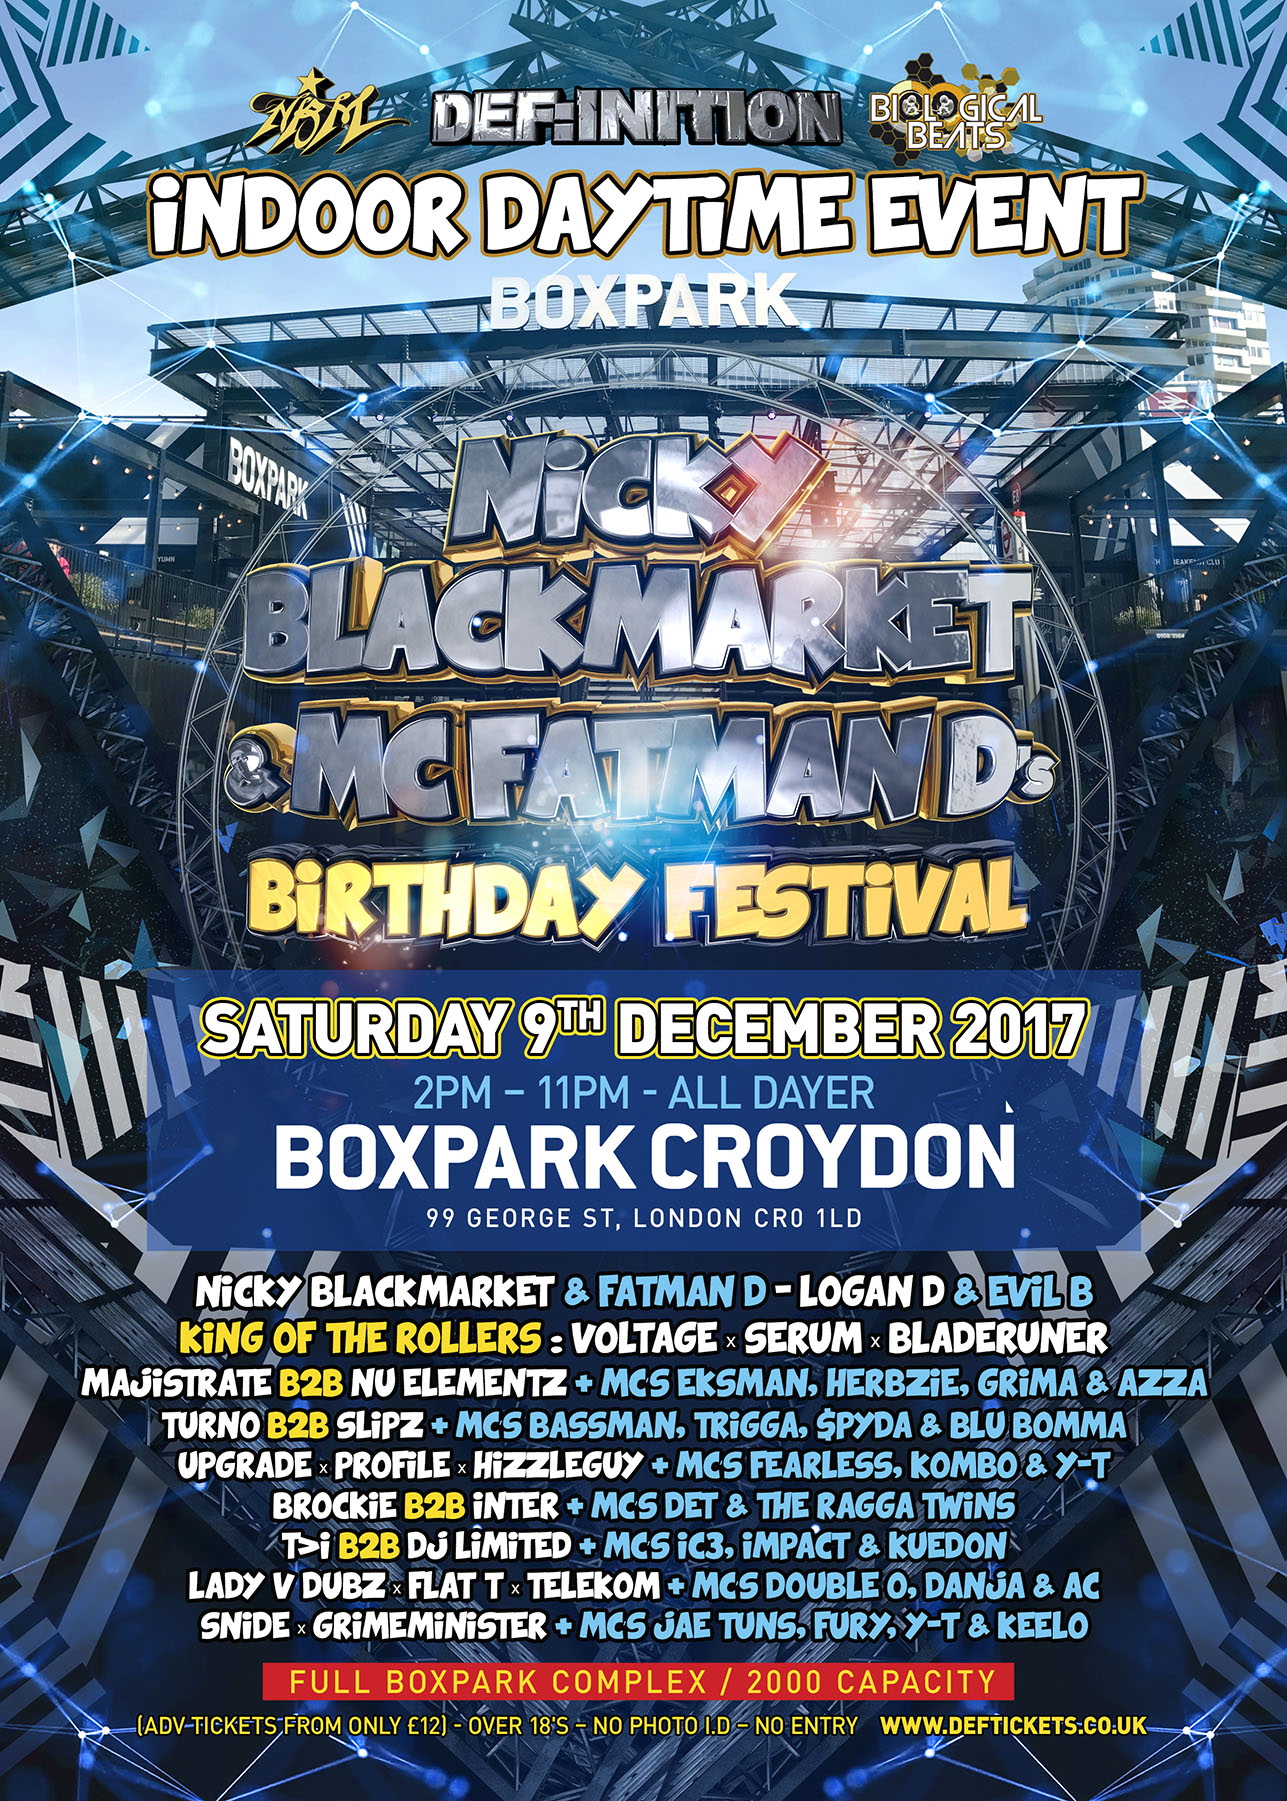 NICKY BLACKMARKET & FATMAN D'S BIRTHDAY FESTIVAL